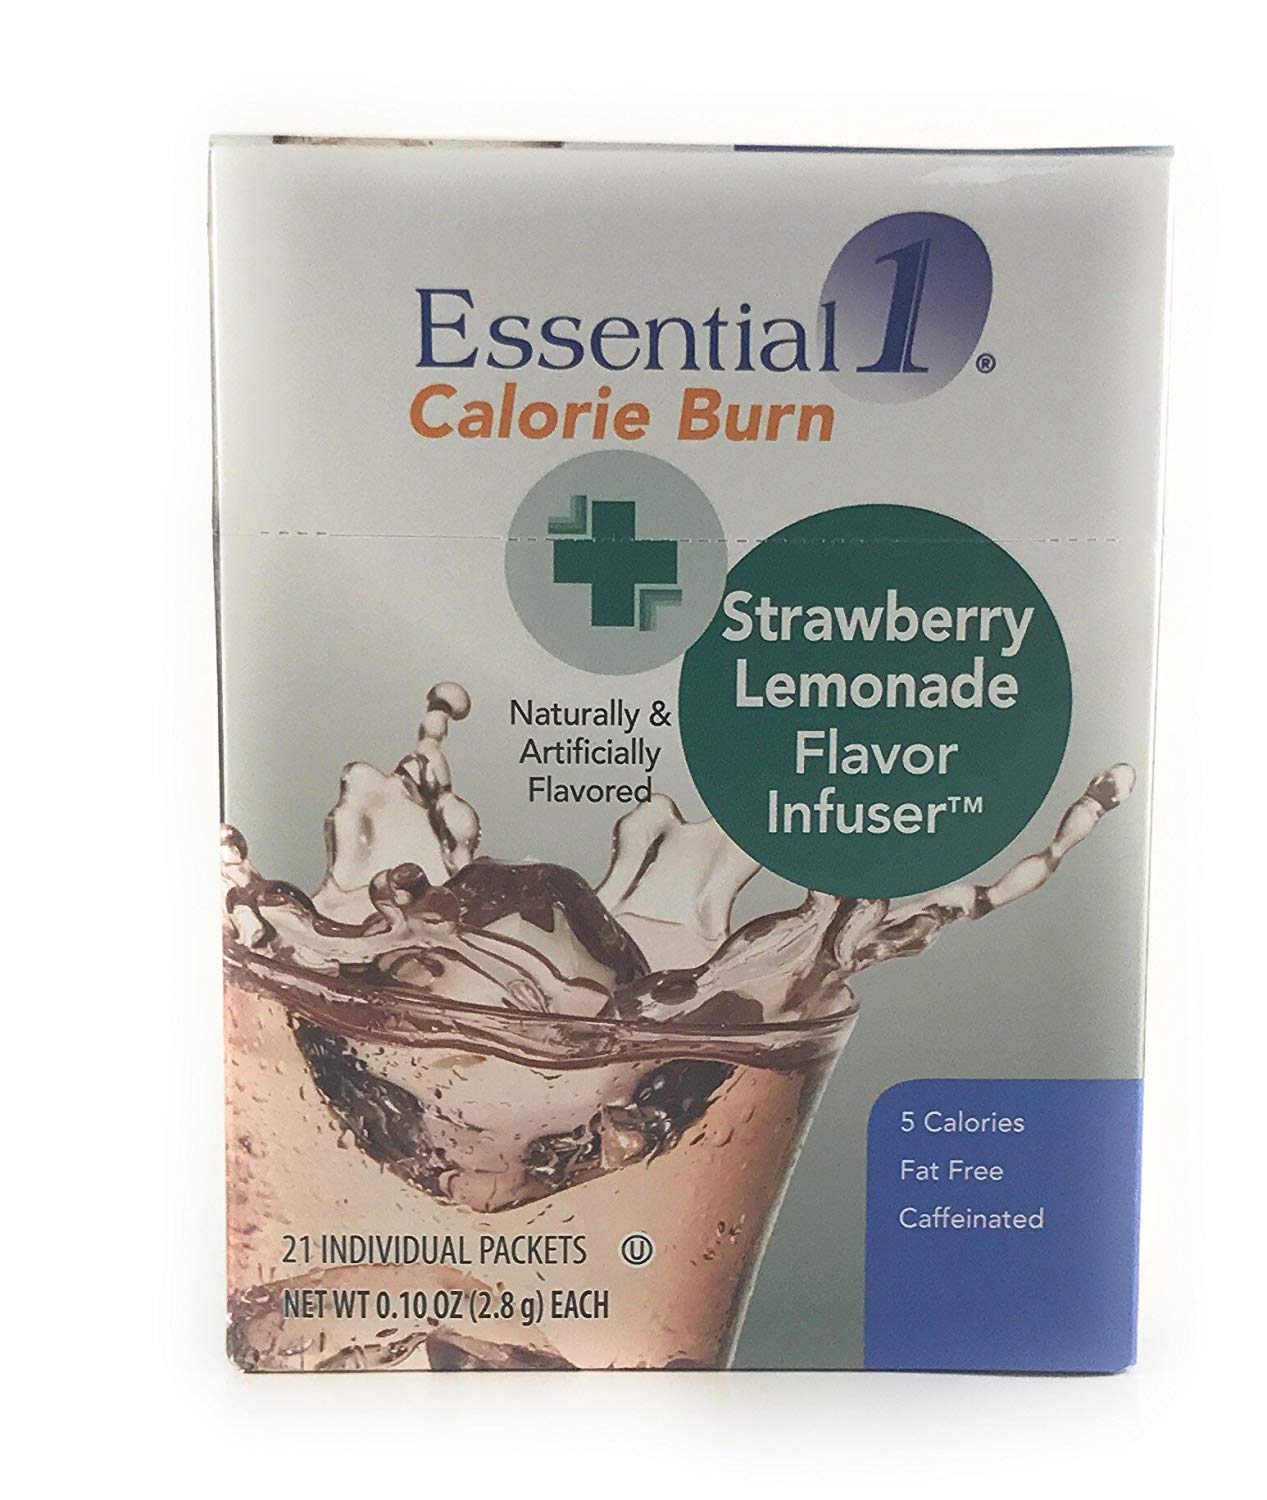 Medifast Essential1: Calorie Burn Strawberry Lemonade Flavor Infuser (1 Box/21 Servings)